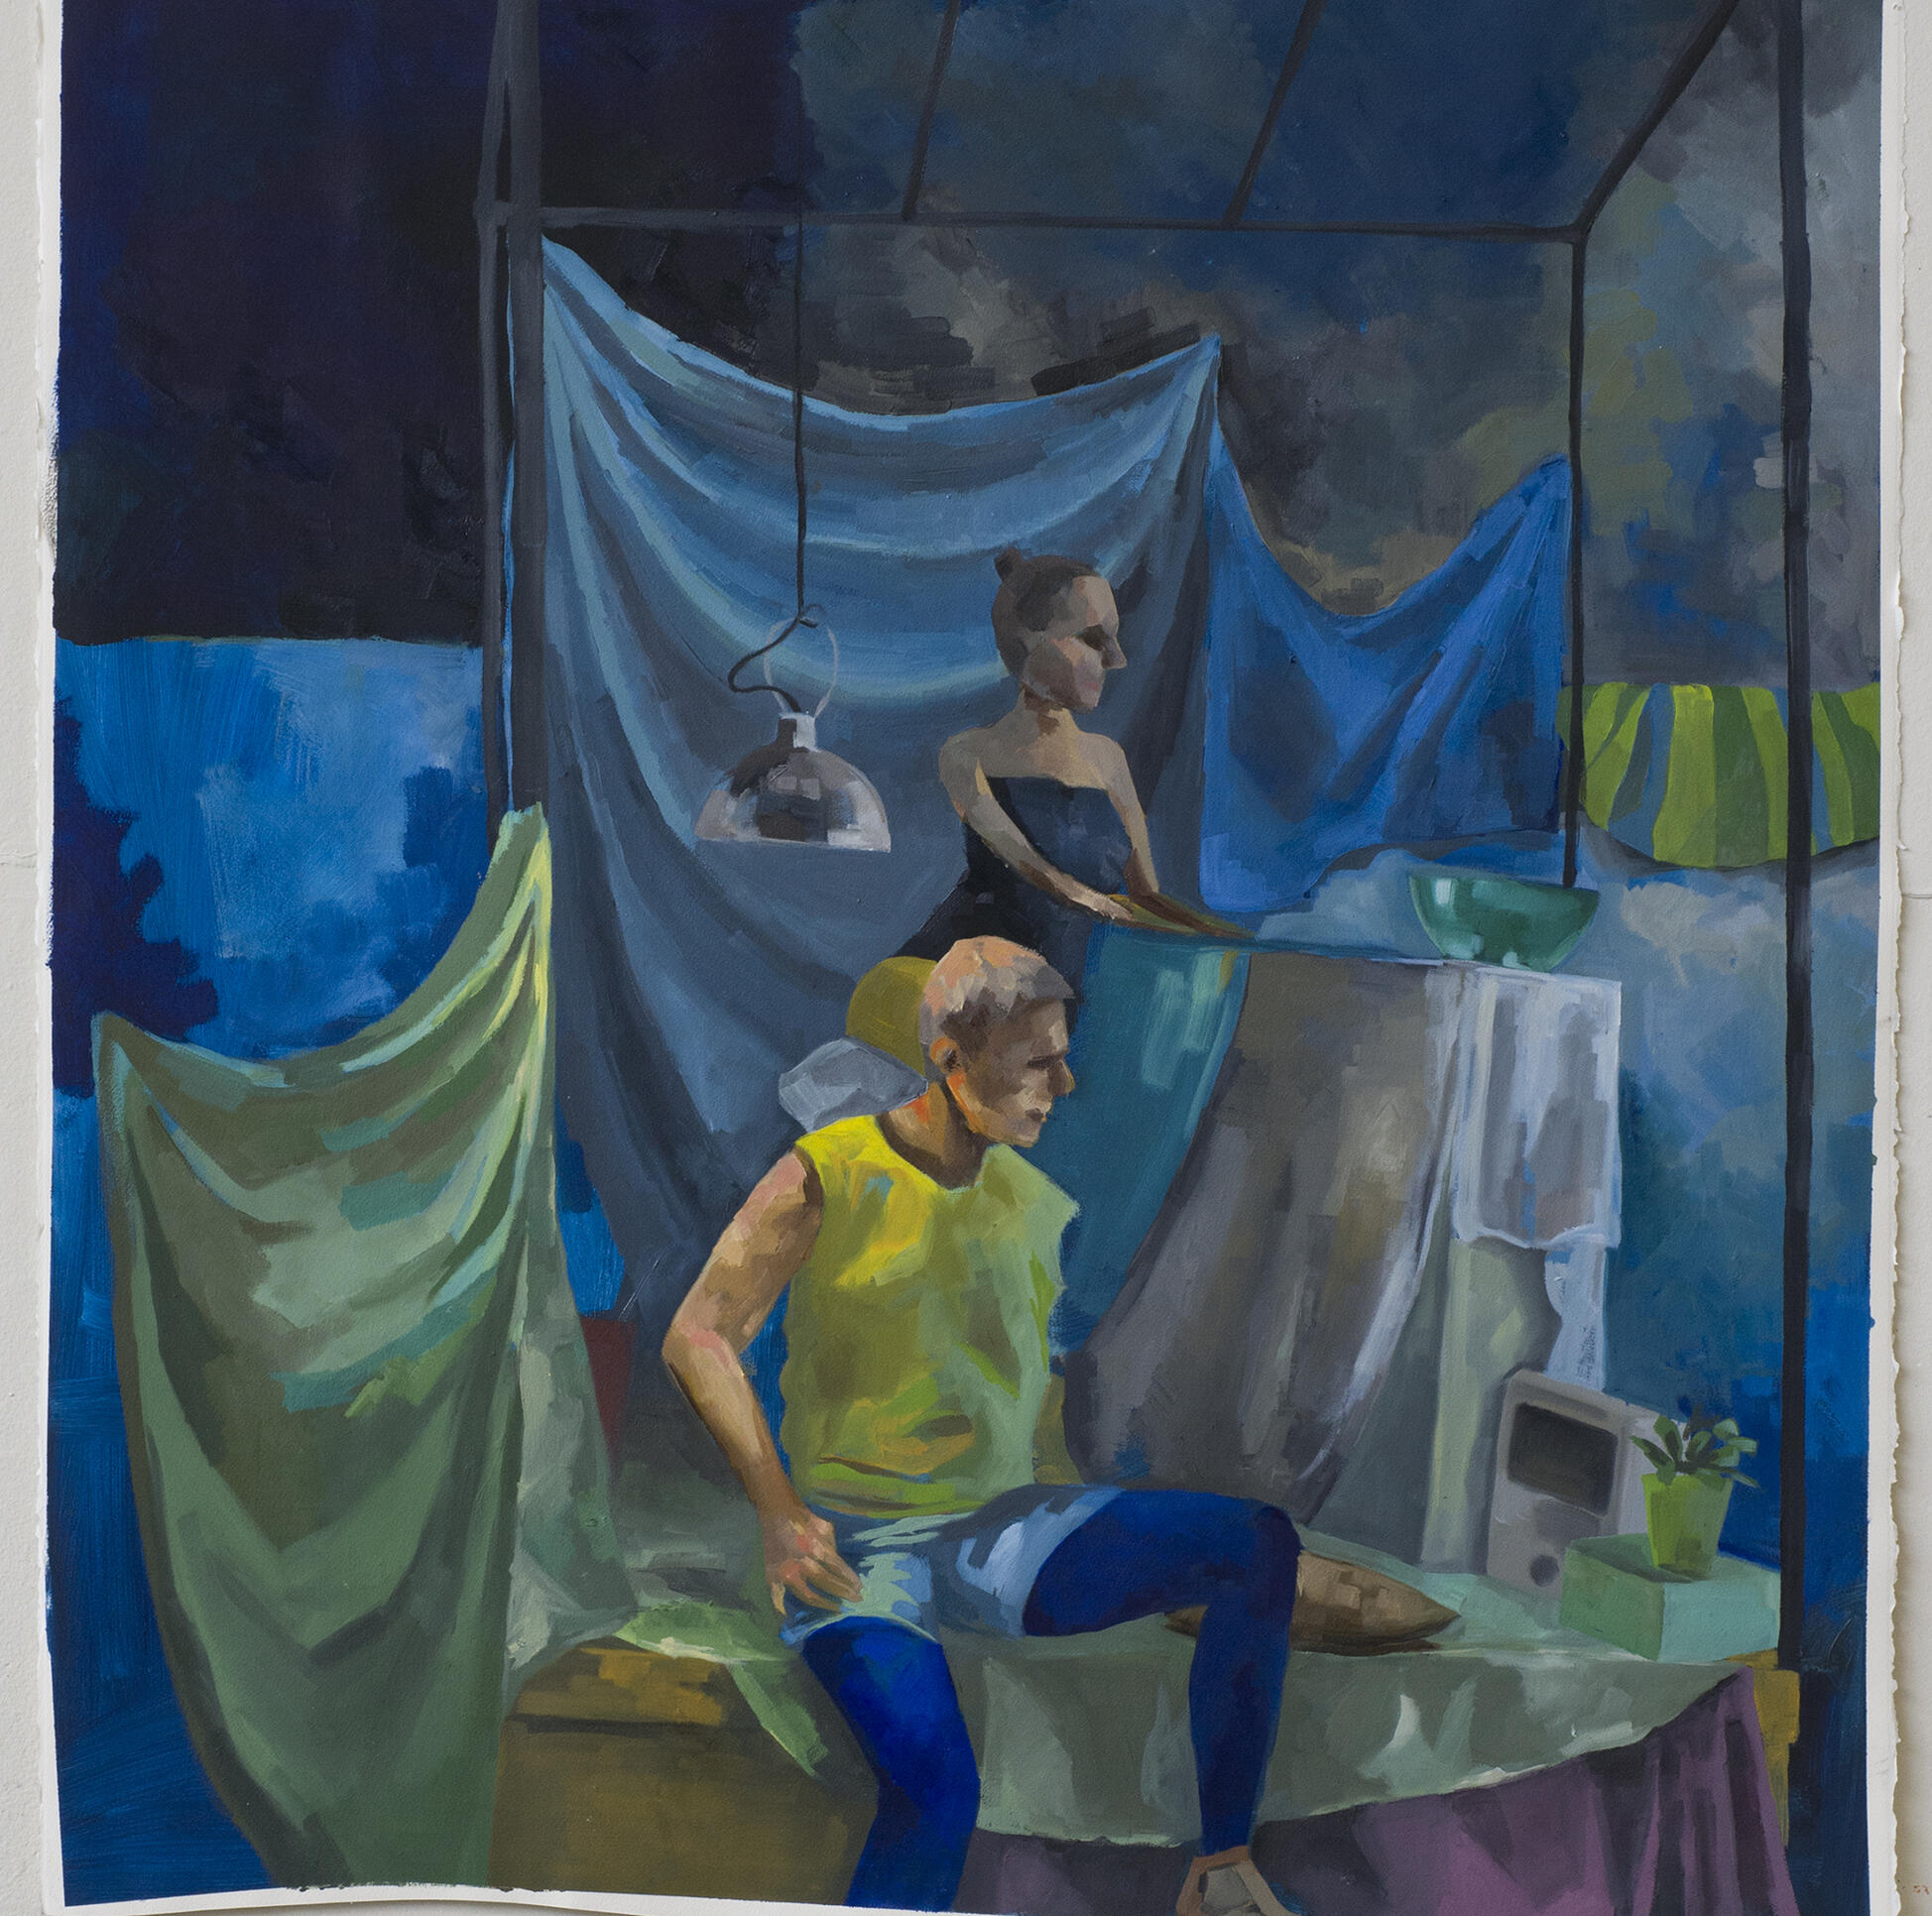 Painting of two figures in a still life setting with heavy drapery behind them. ; Kiki Kita